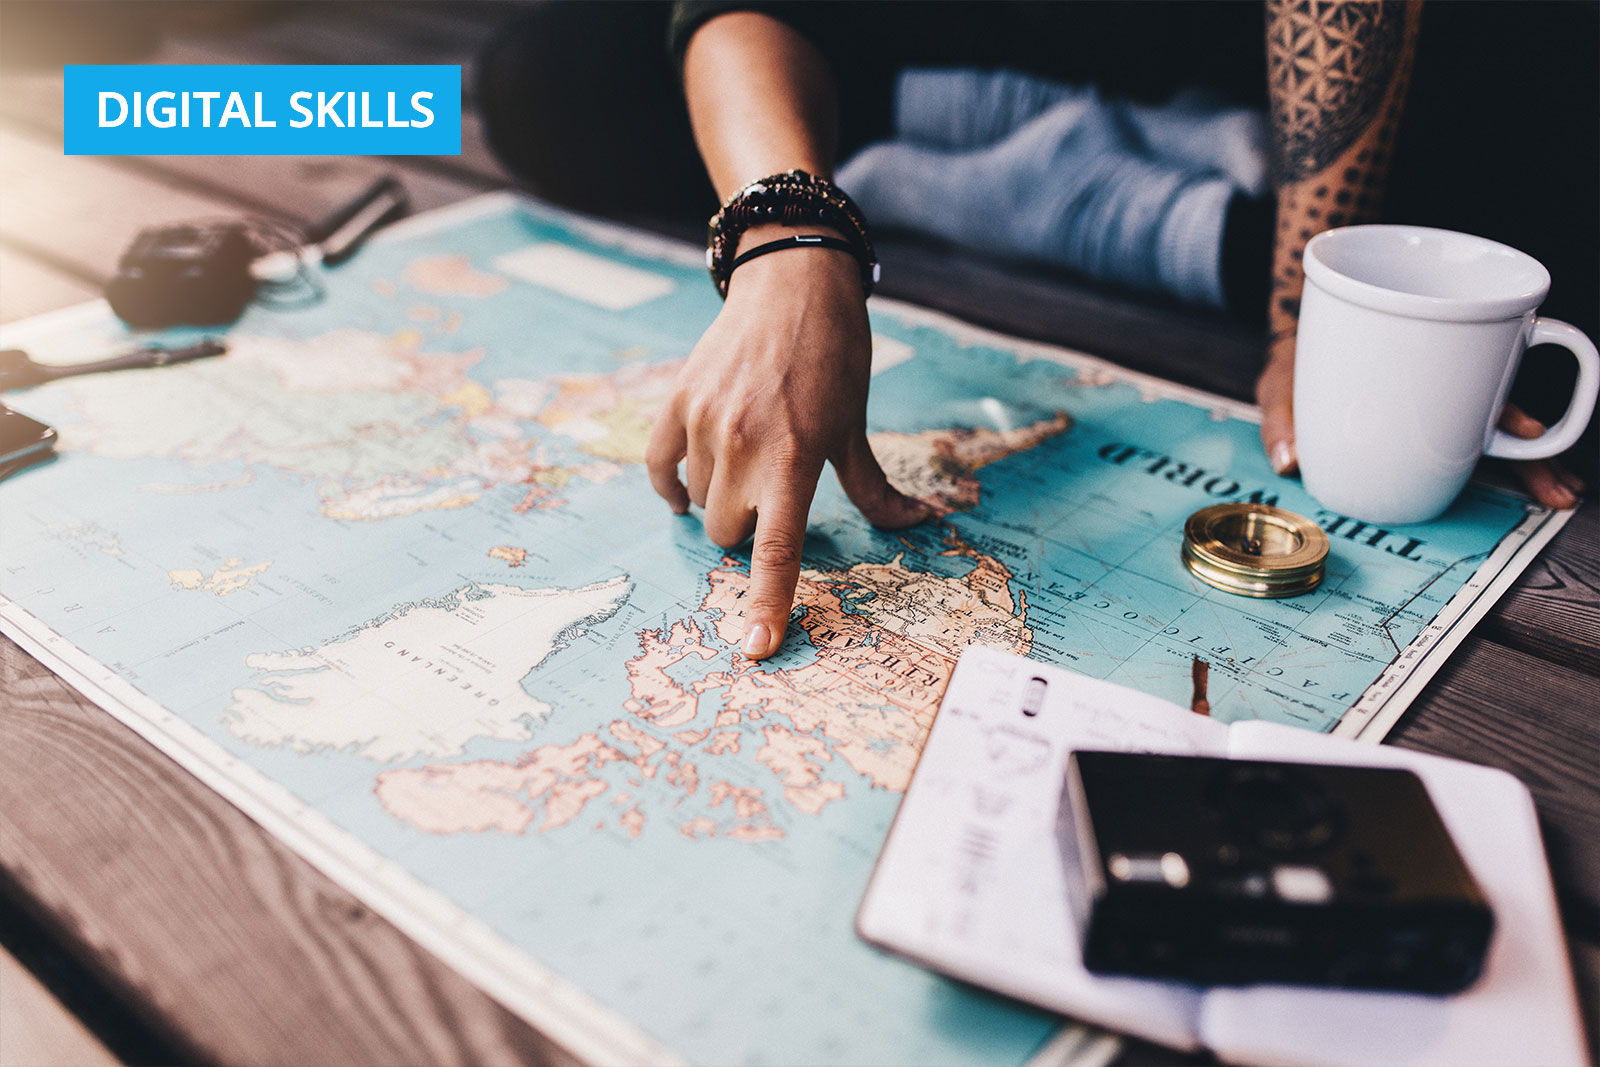 How Do Countries Rate on Digital Skills?